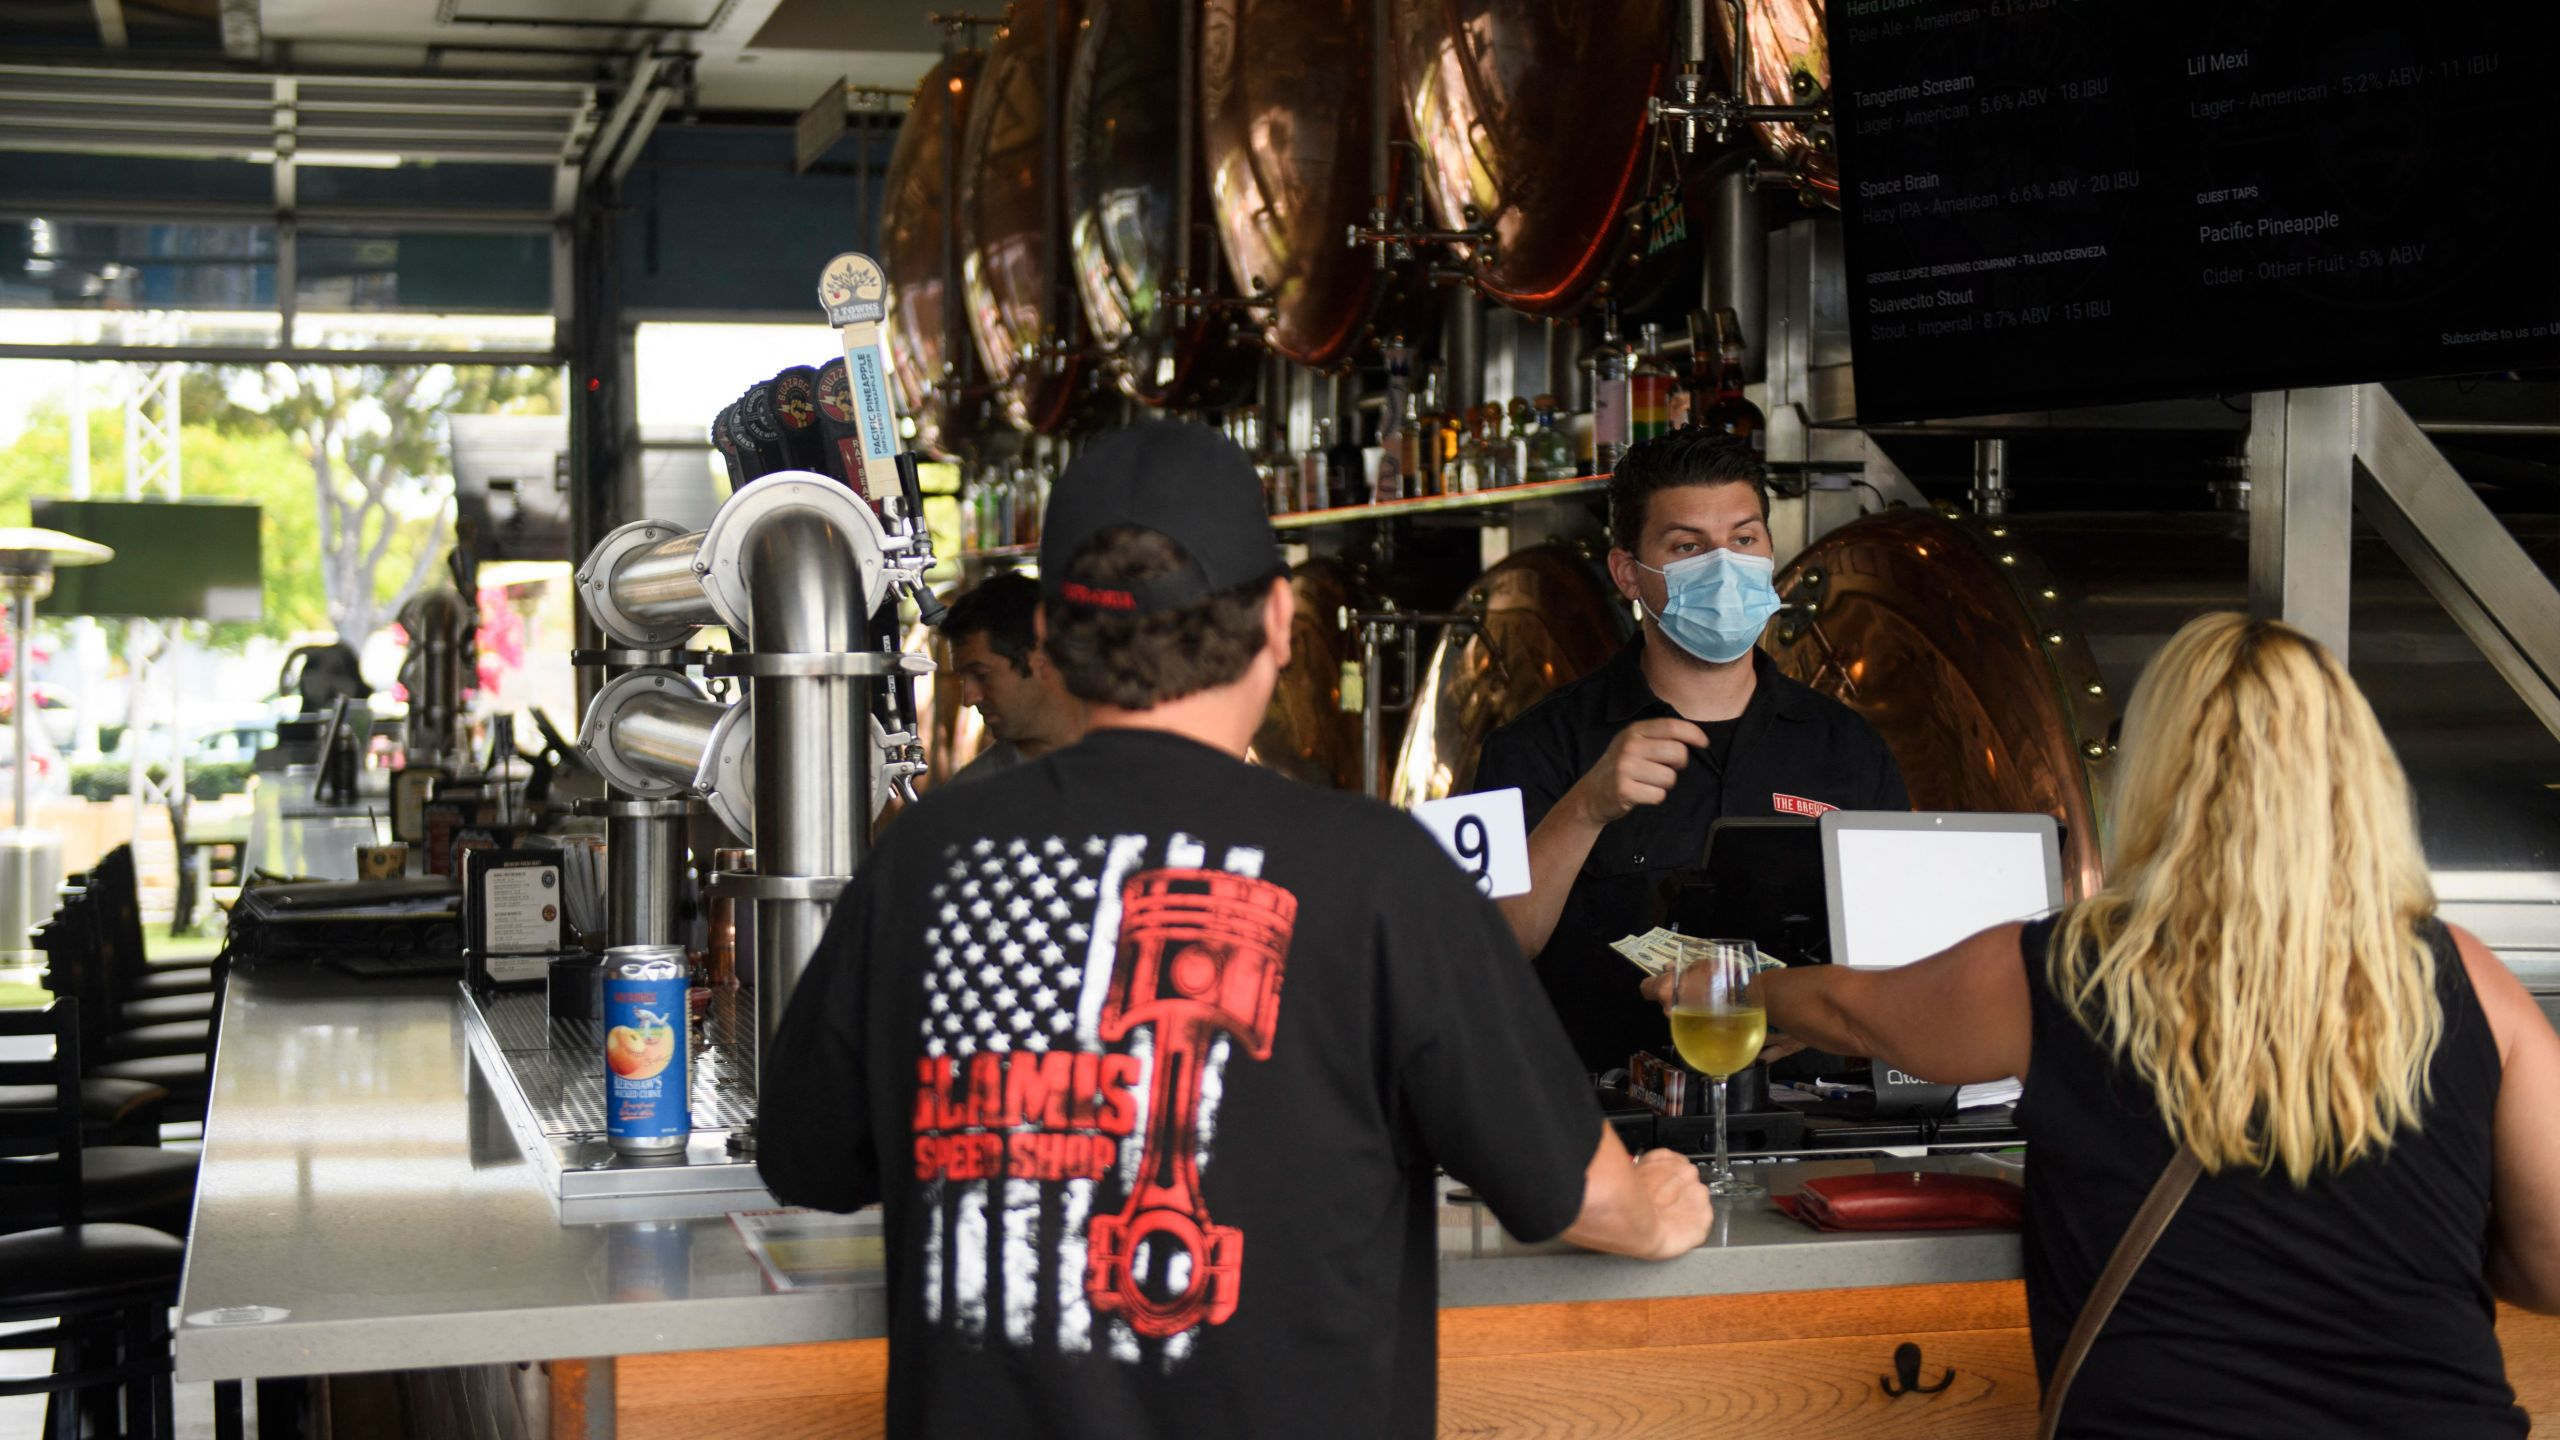 A bartender assists customers with a purchase at The Brew Hall on June 23, 2021 in Torrance, California. (PATRICK T. FALLON/AFP via Getty Images)